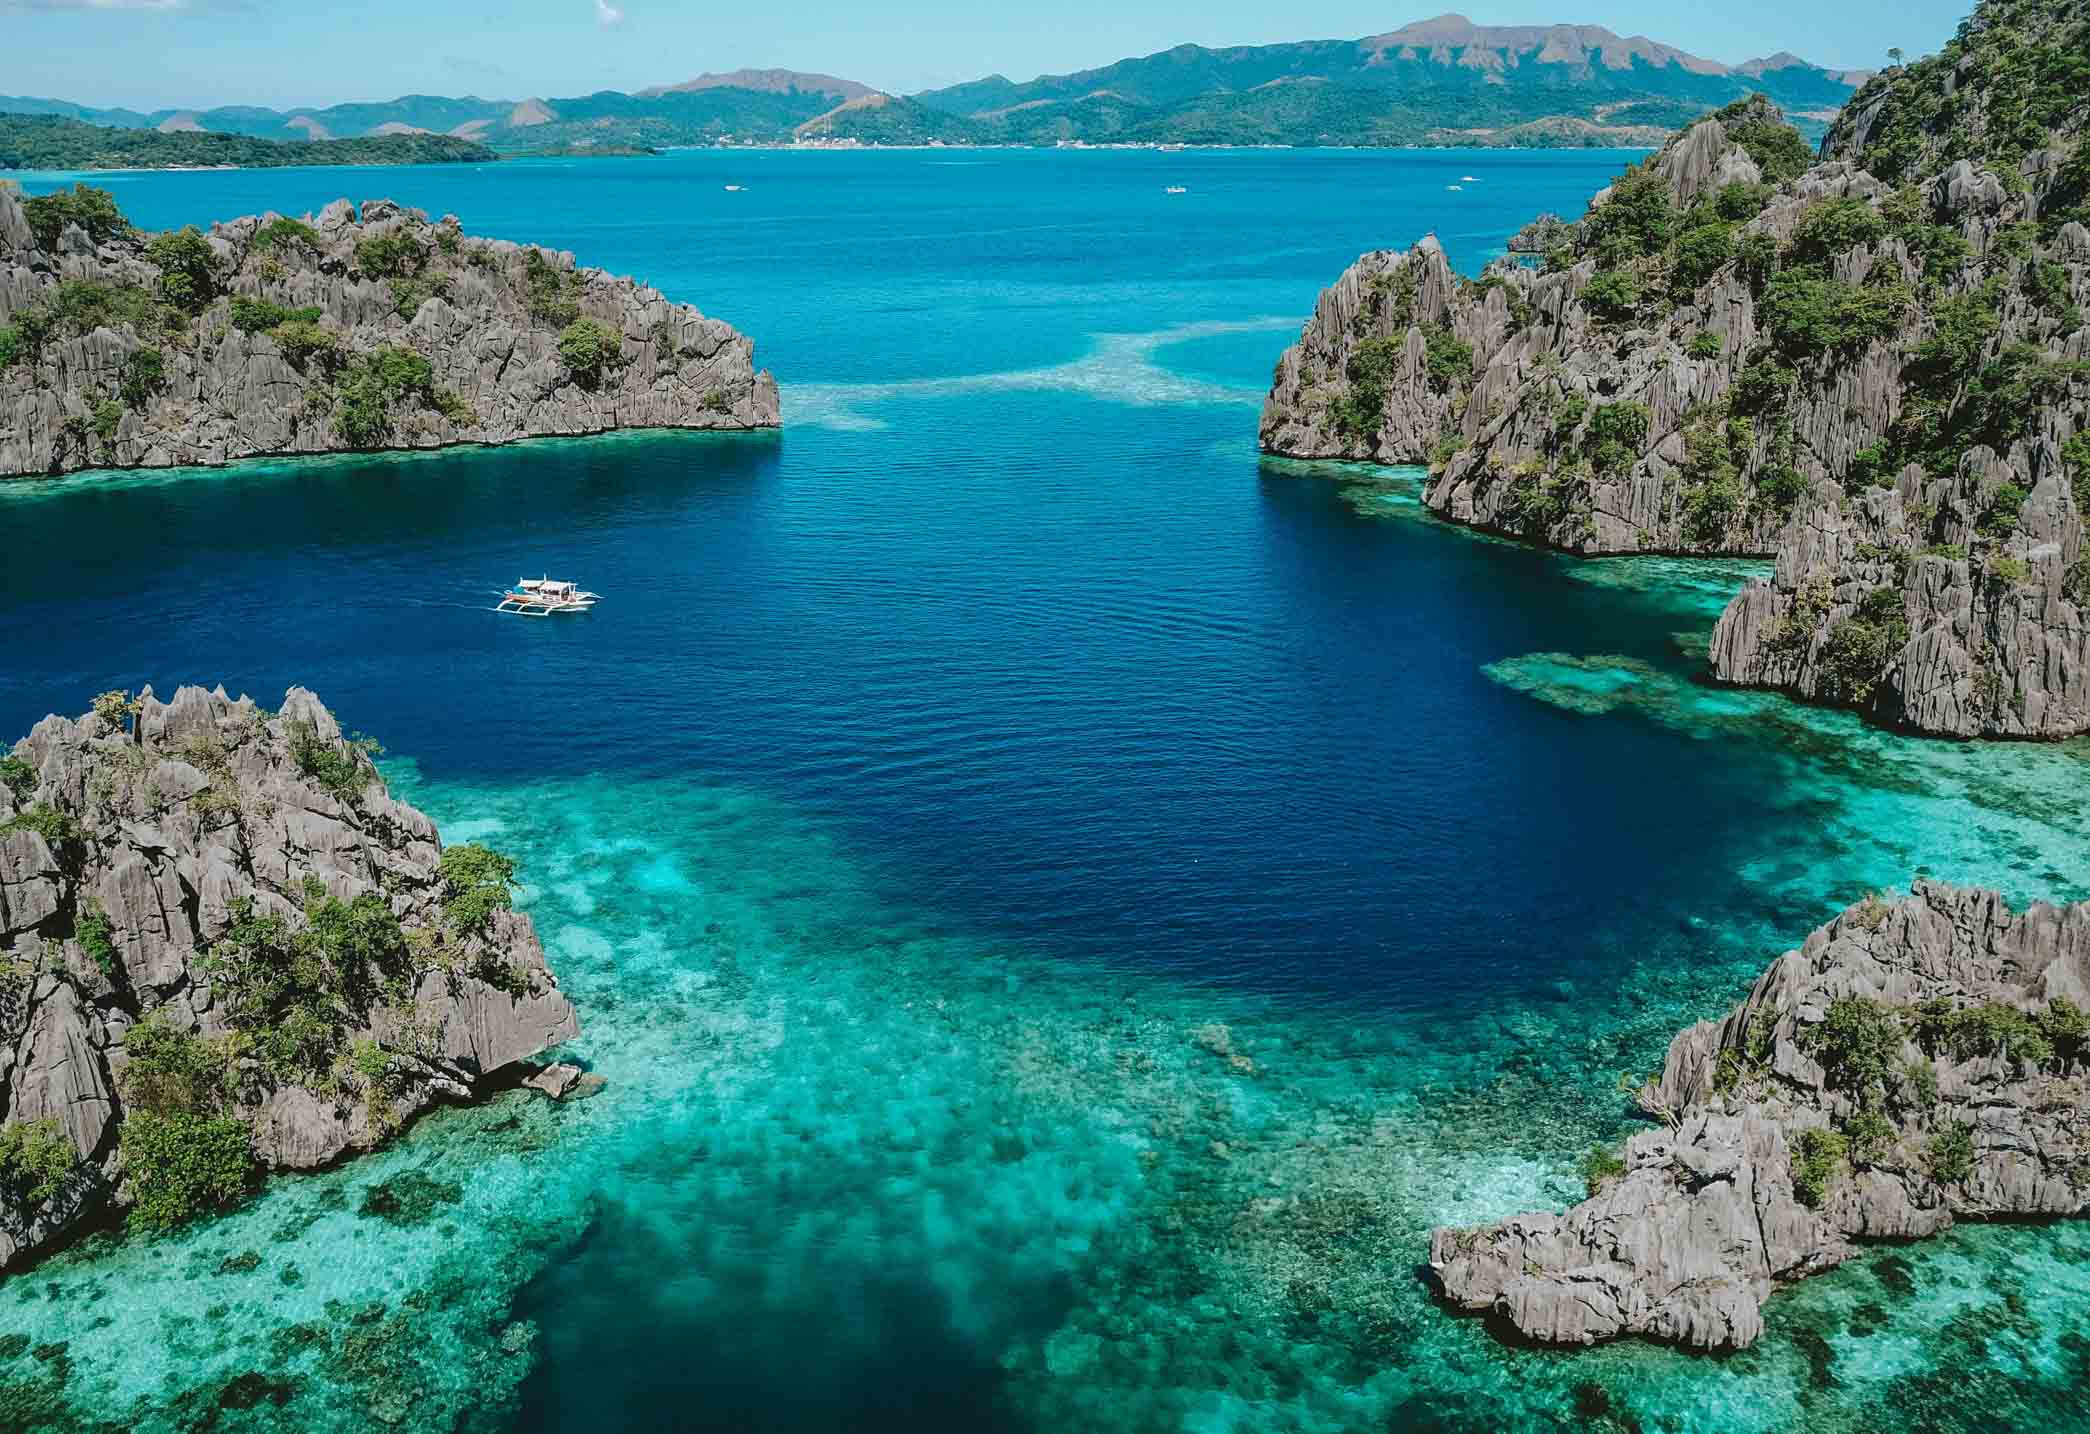 Coron Palawan - Travel Guide To Visit This Lovely Island in The Philippines 1